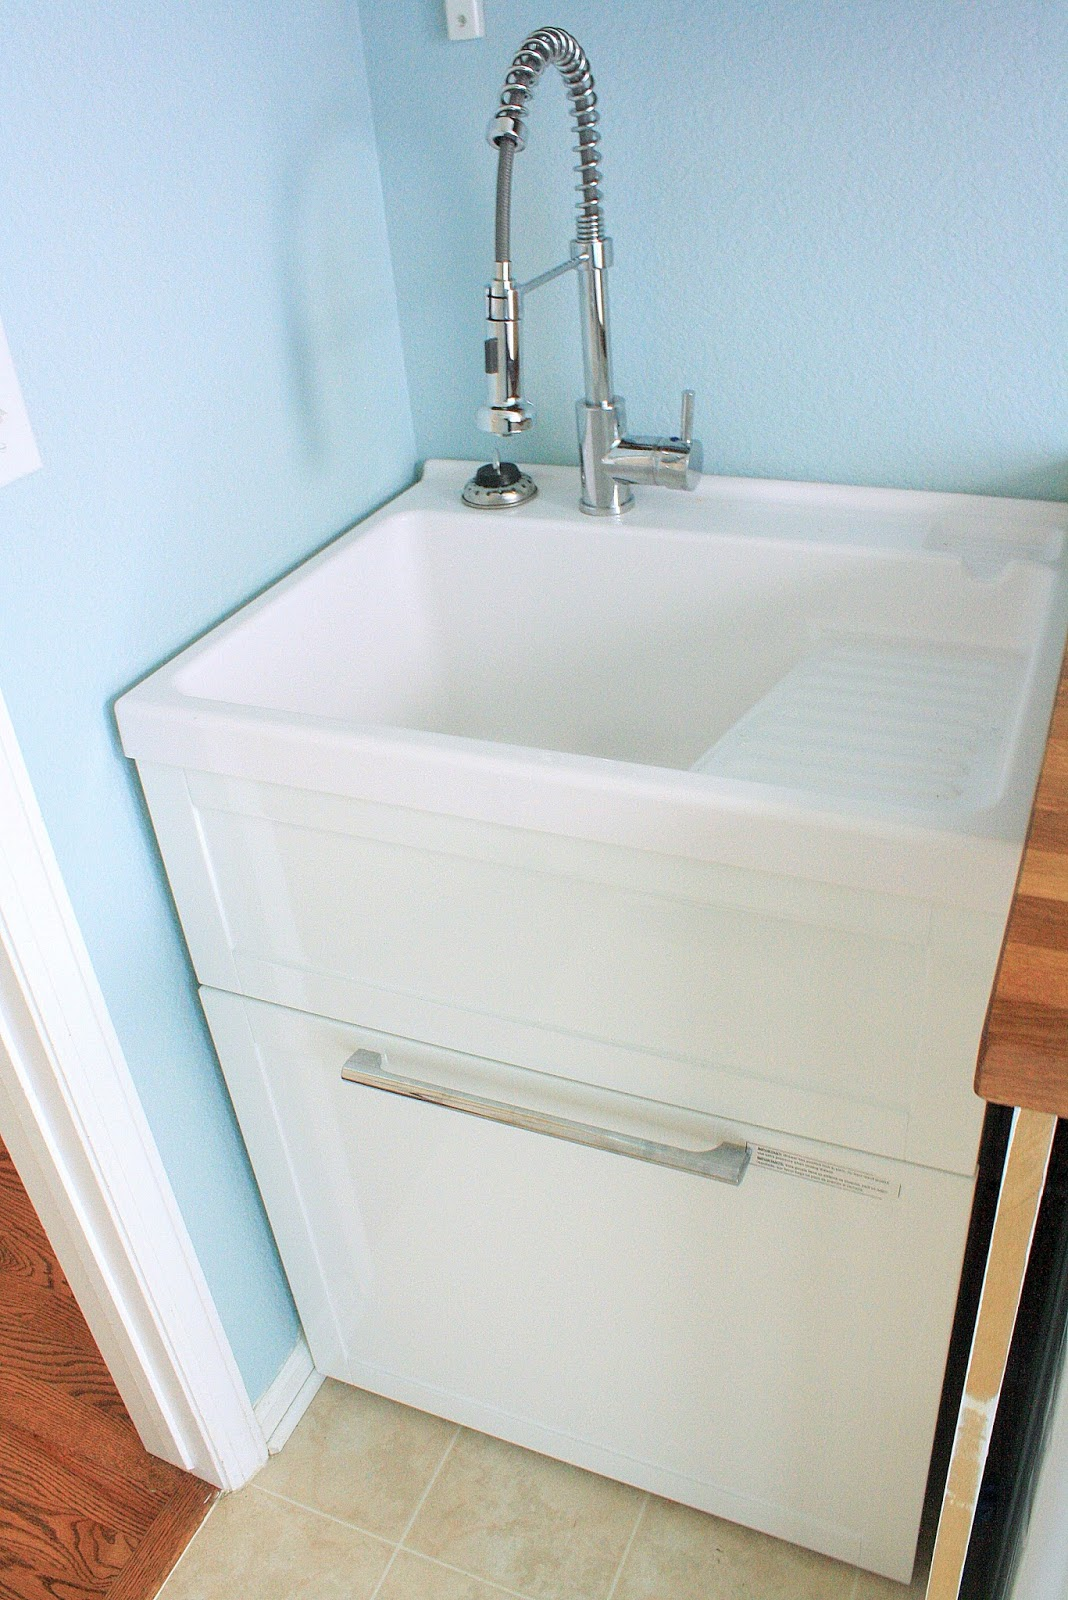 Utility Sink Bathroom : Laundry Room Utility Sinks Interior Design Ideas